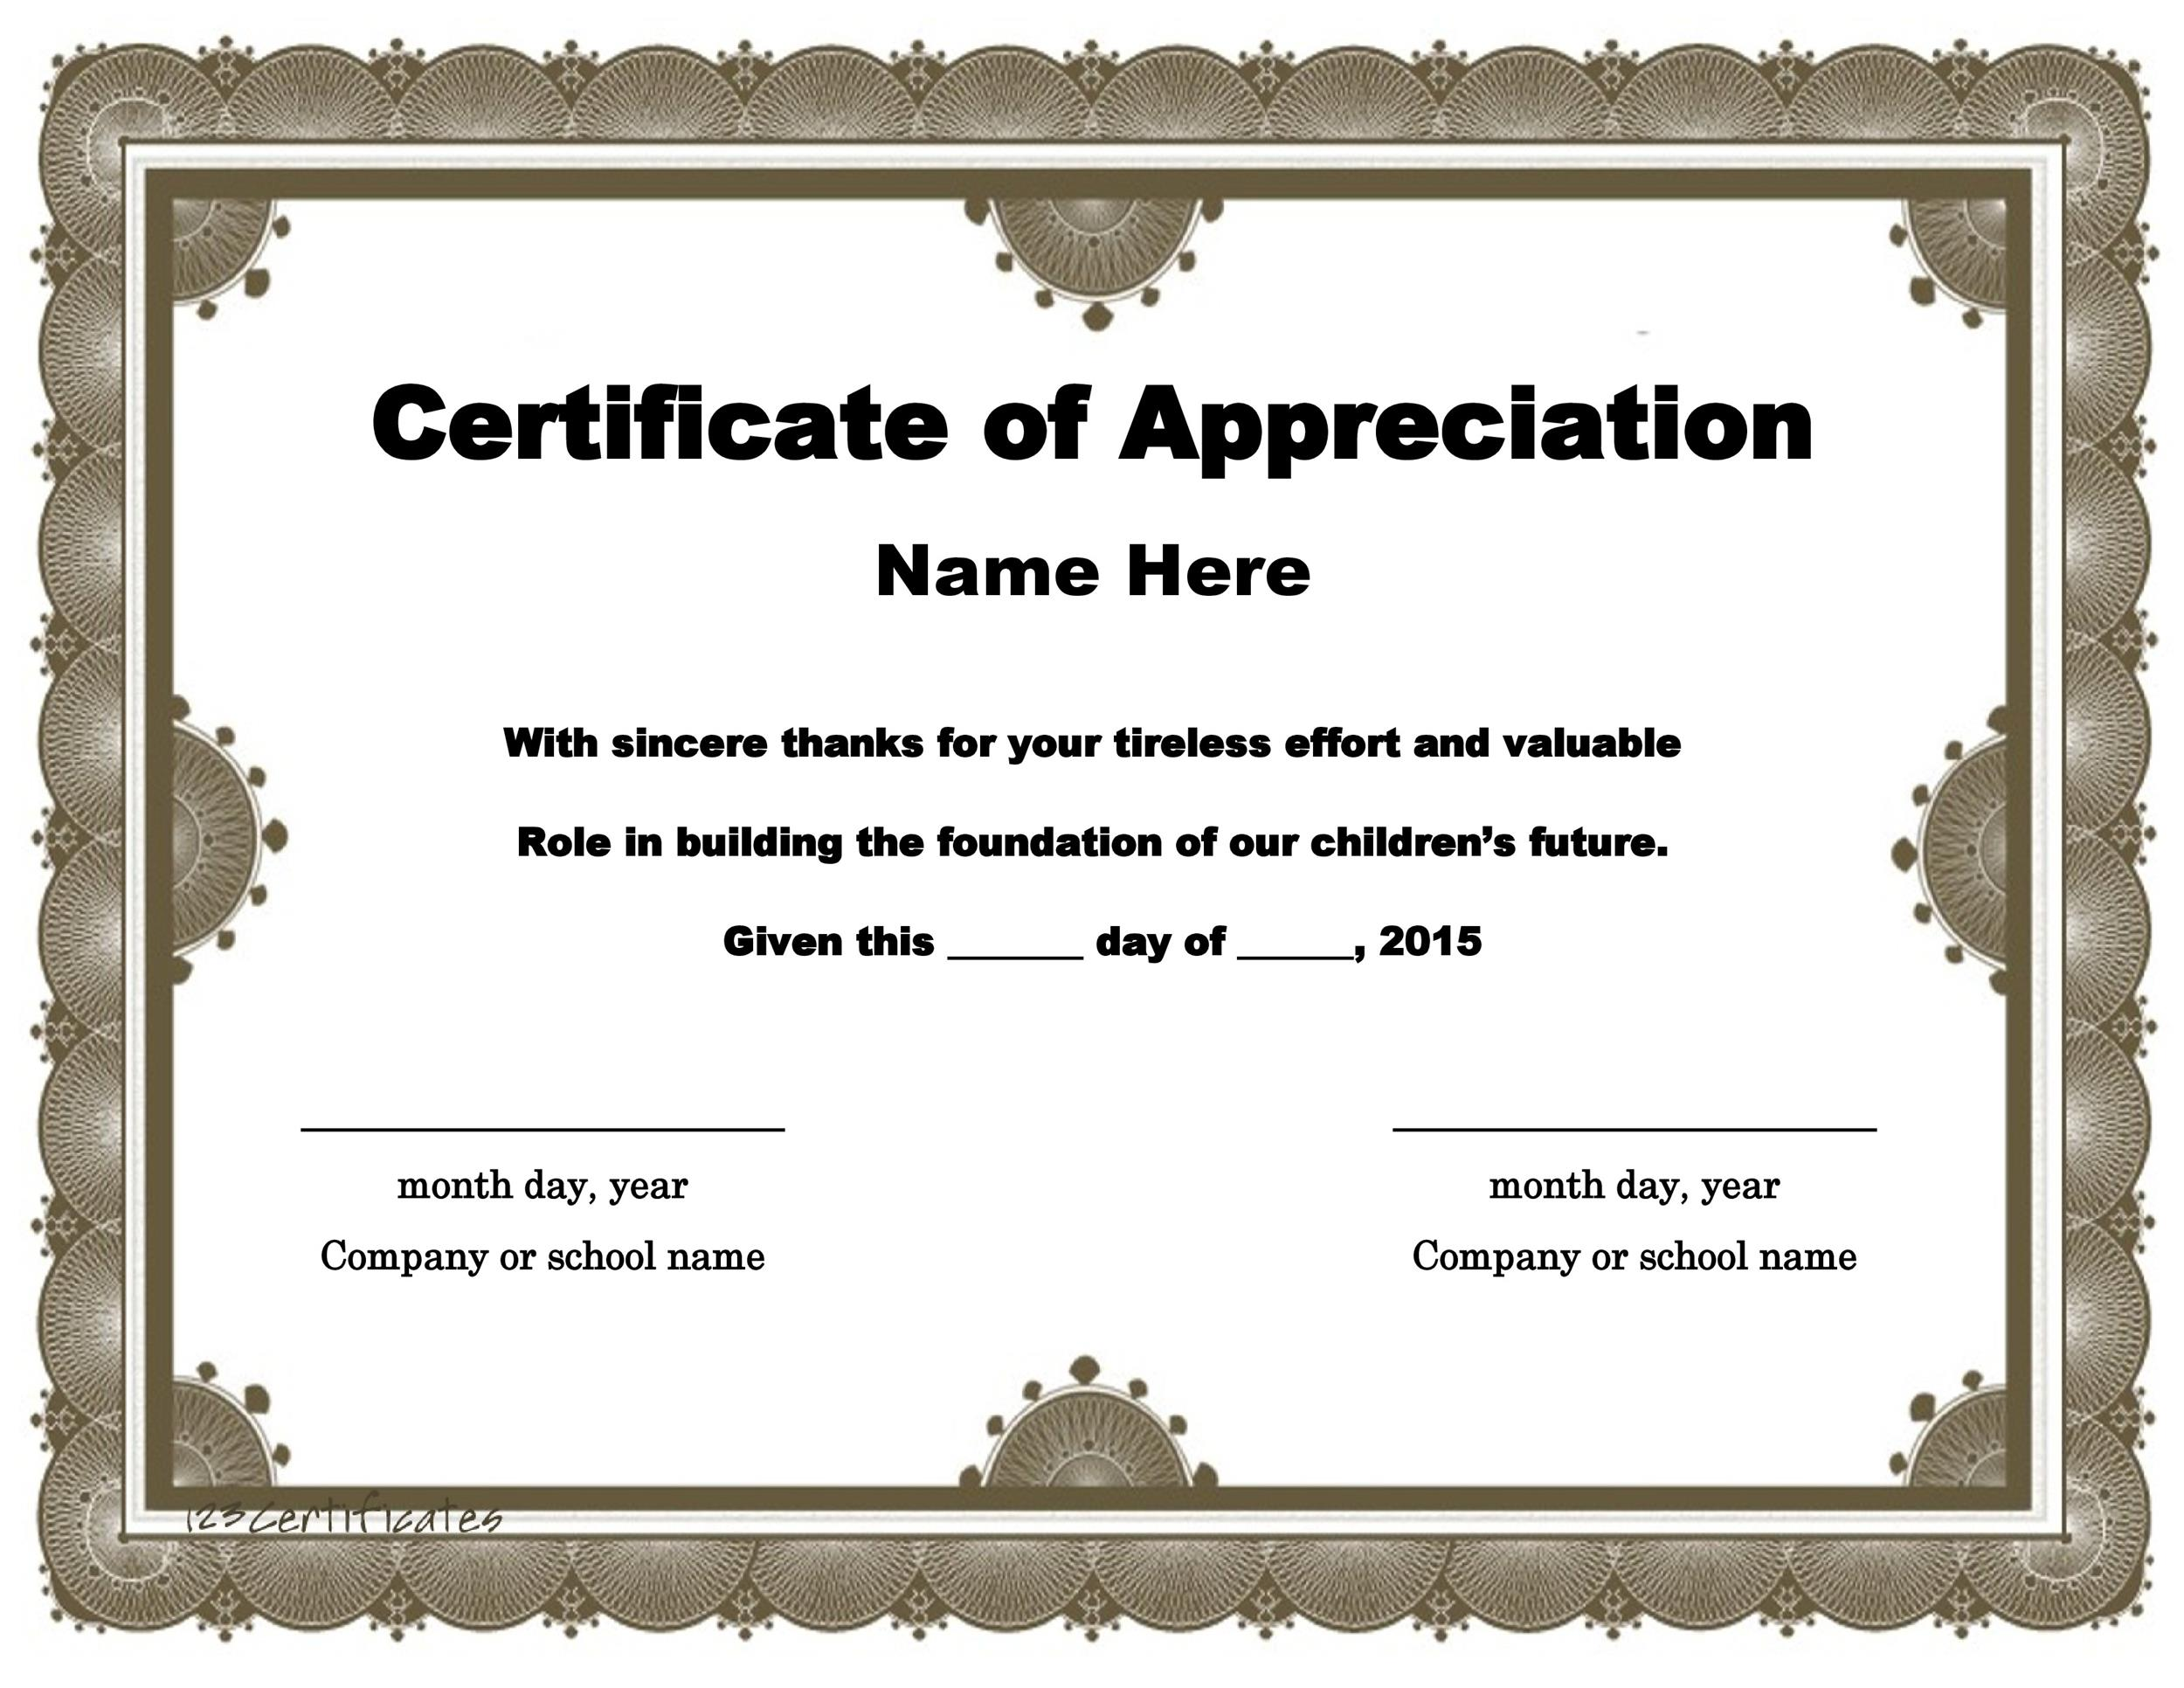 printable certificate of appreciation 03